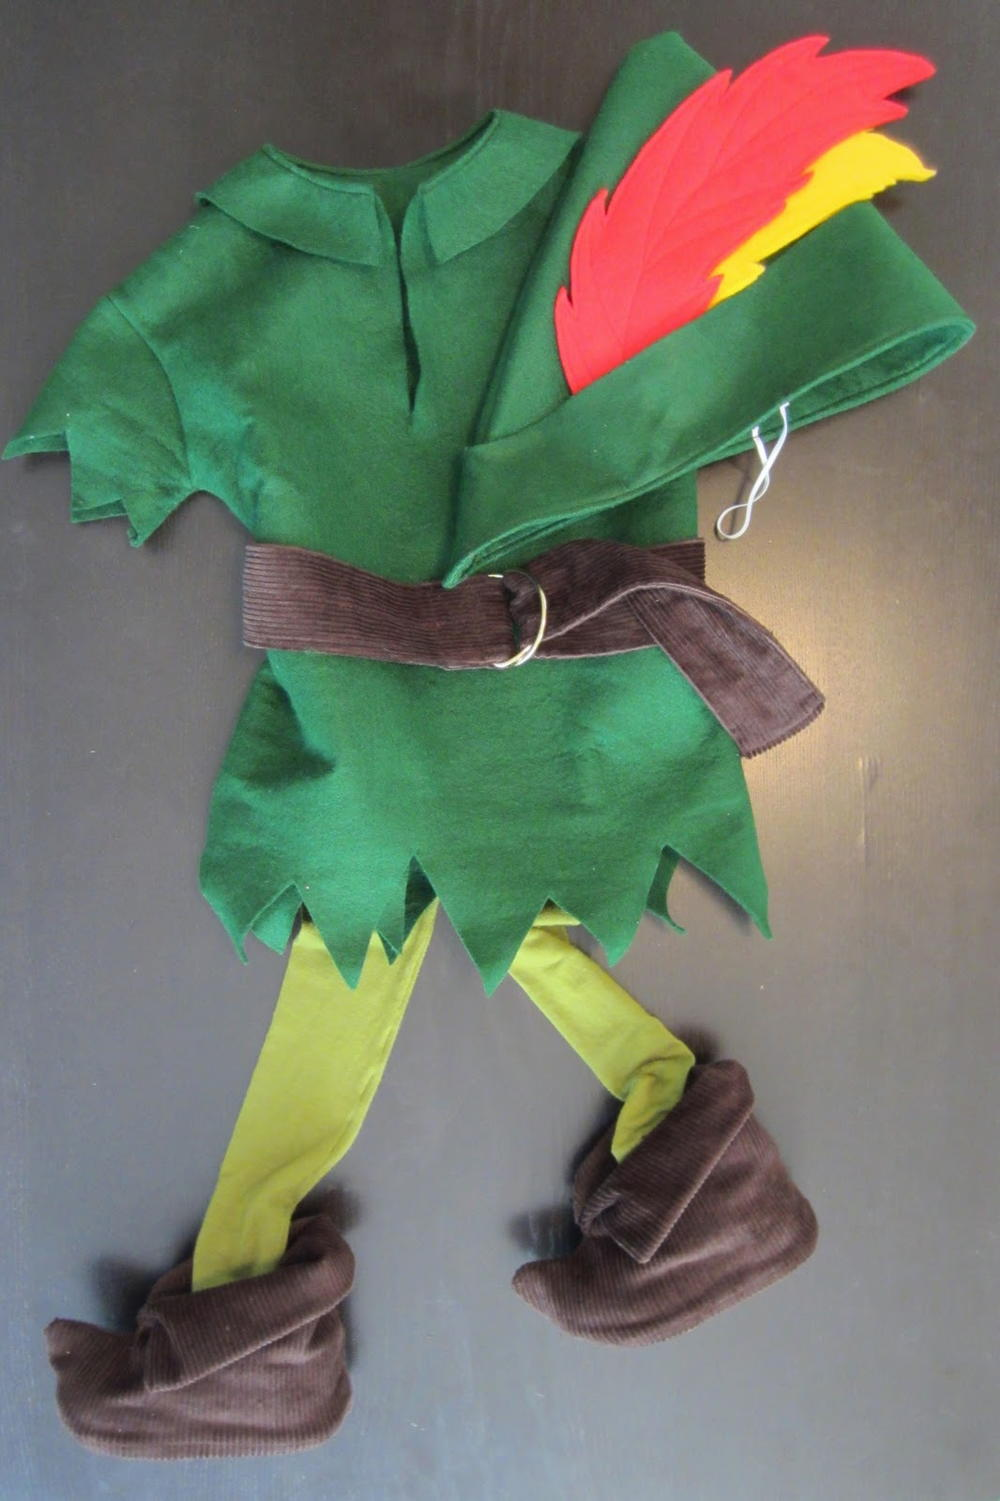 Homemade Peter Pan Costume AllFreeSewingcom : Homemade Peter Pan CostumeExtraLarge1000ID 1210345 from www.allfreesewing.com size 1000 x 1501 jpeg 122kB